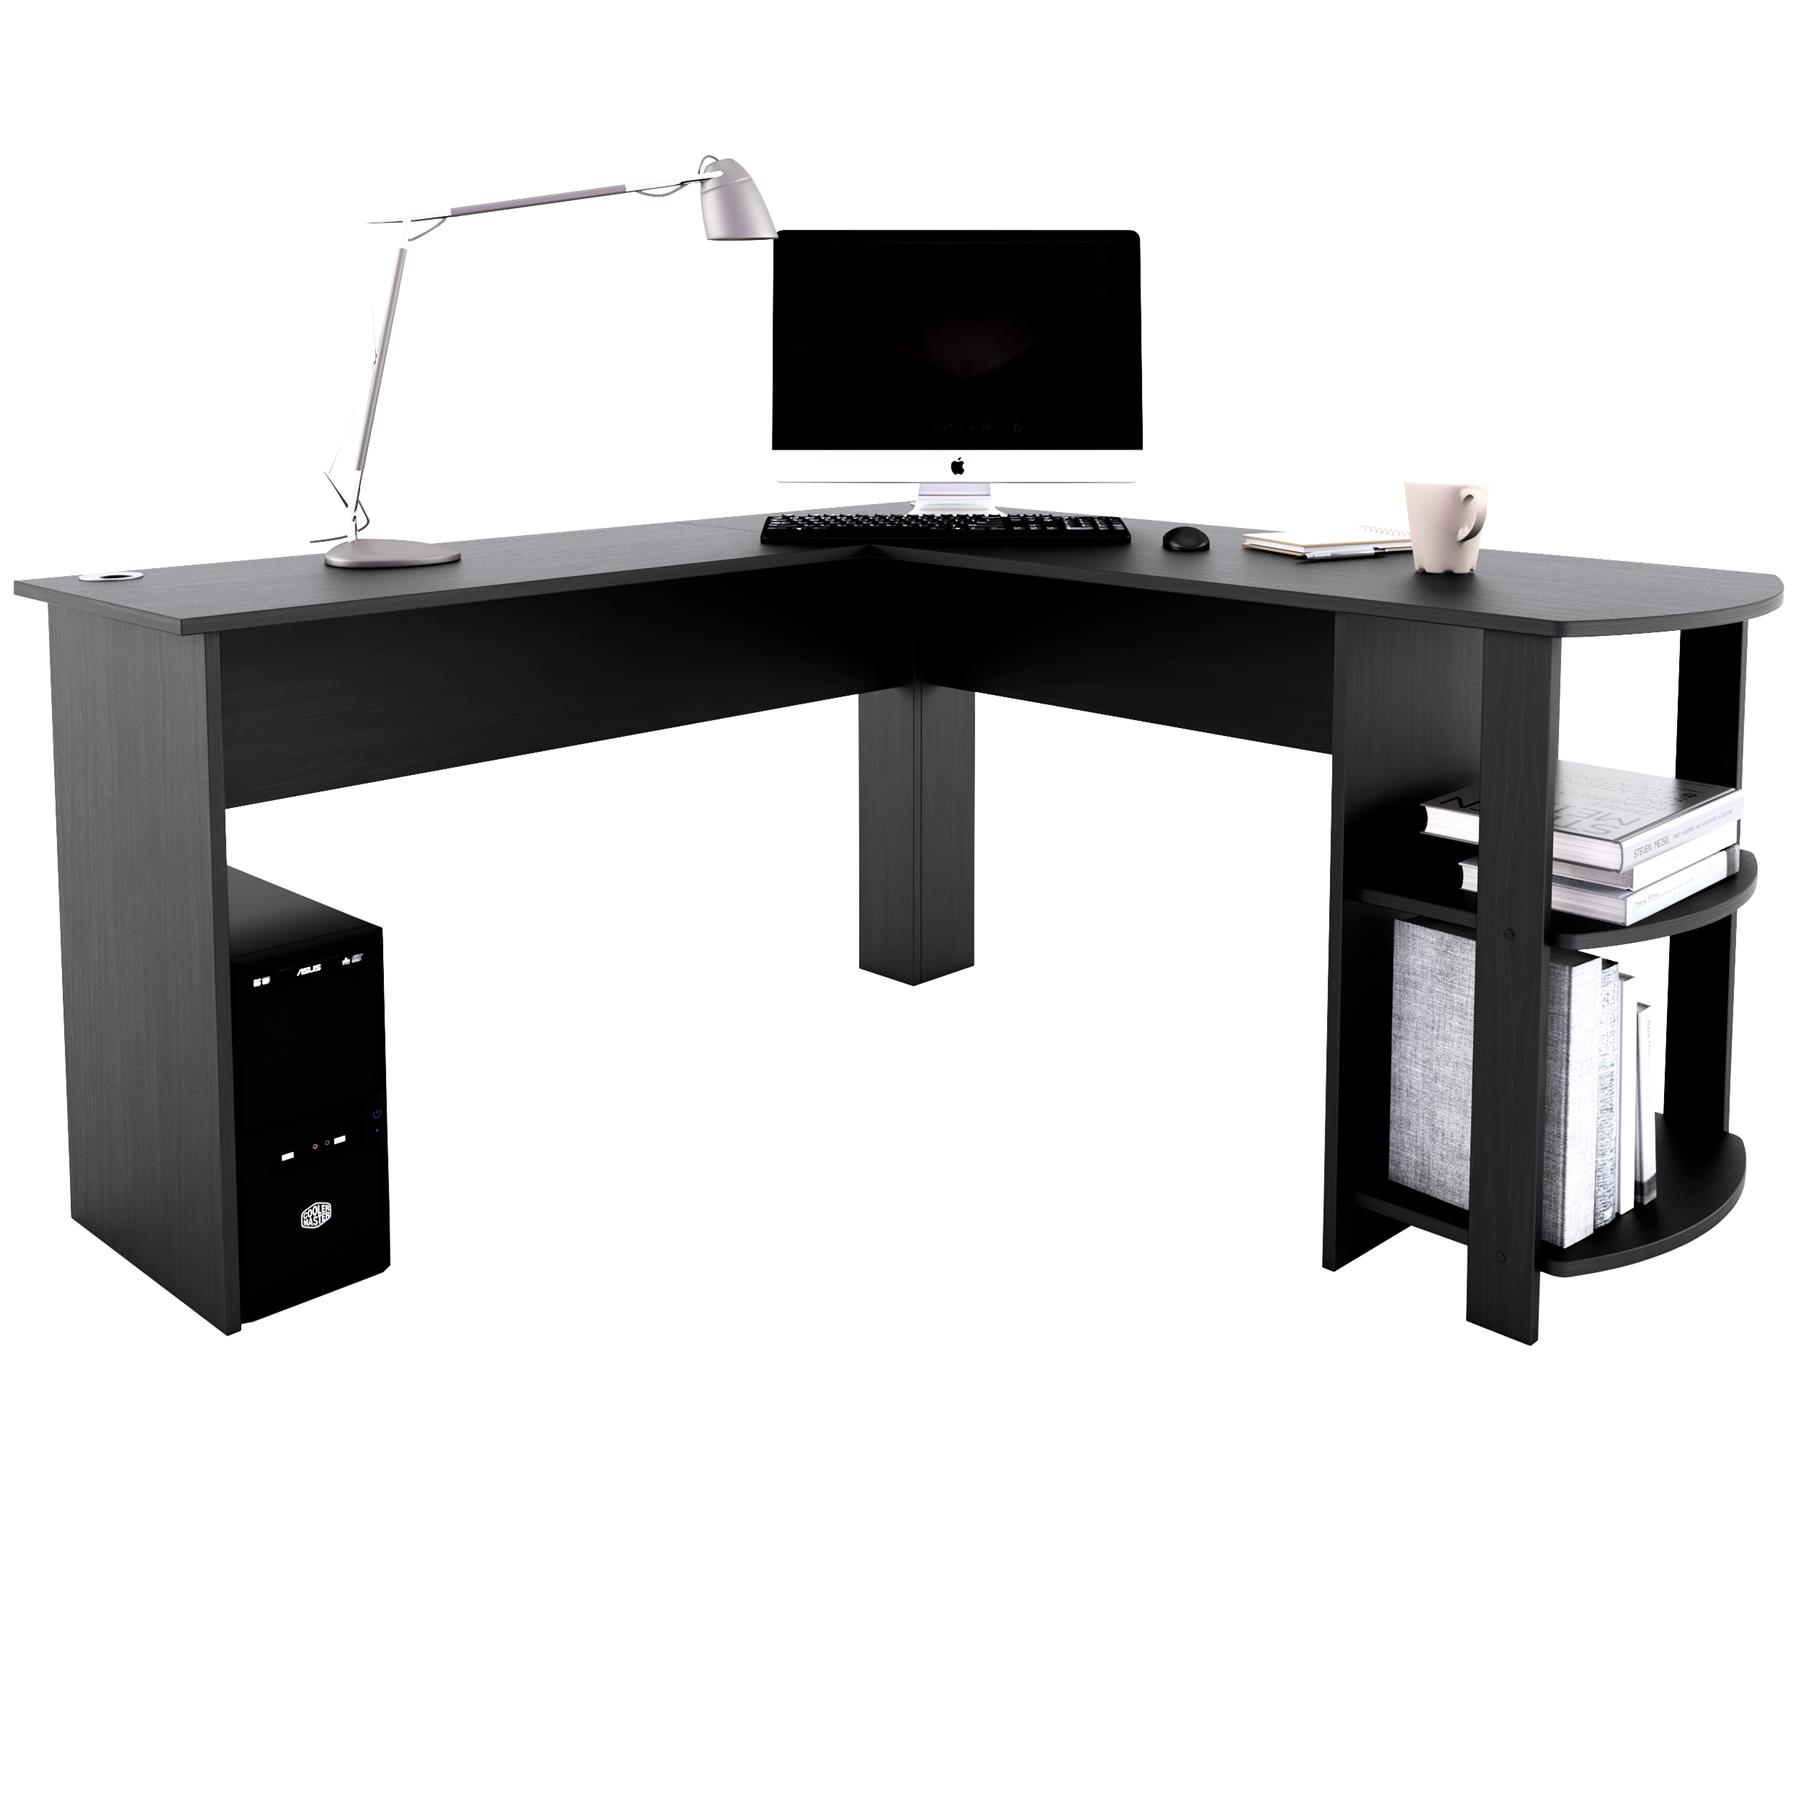 Large Corner Desk With Shelves For Home Office Piranha Furniture Pacu Ebay